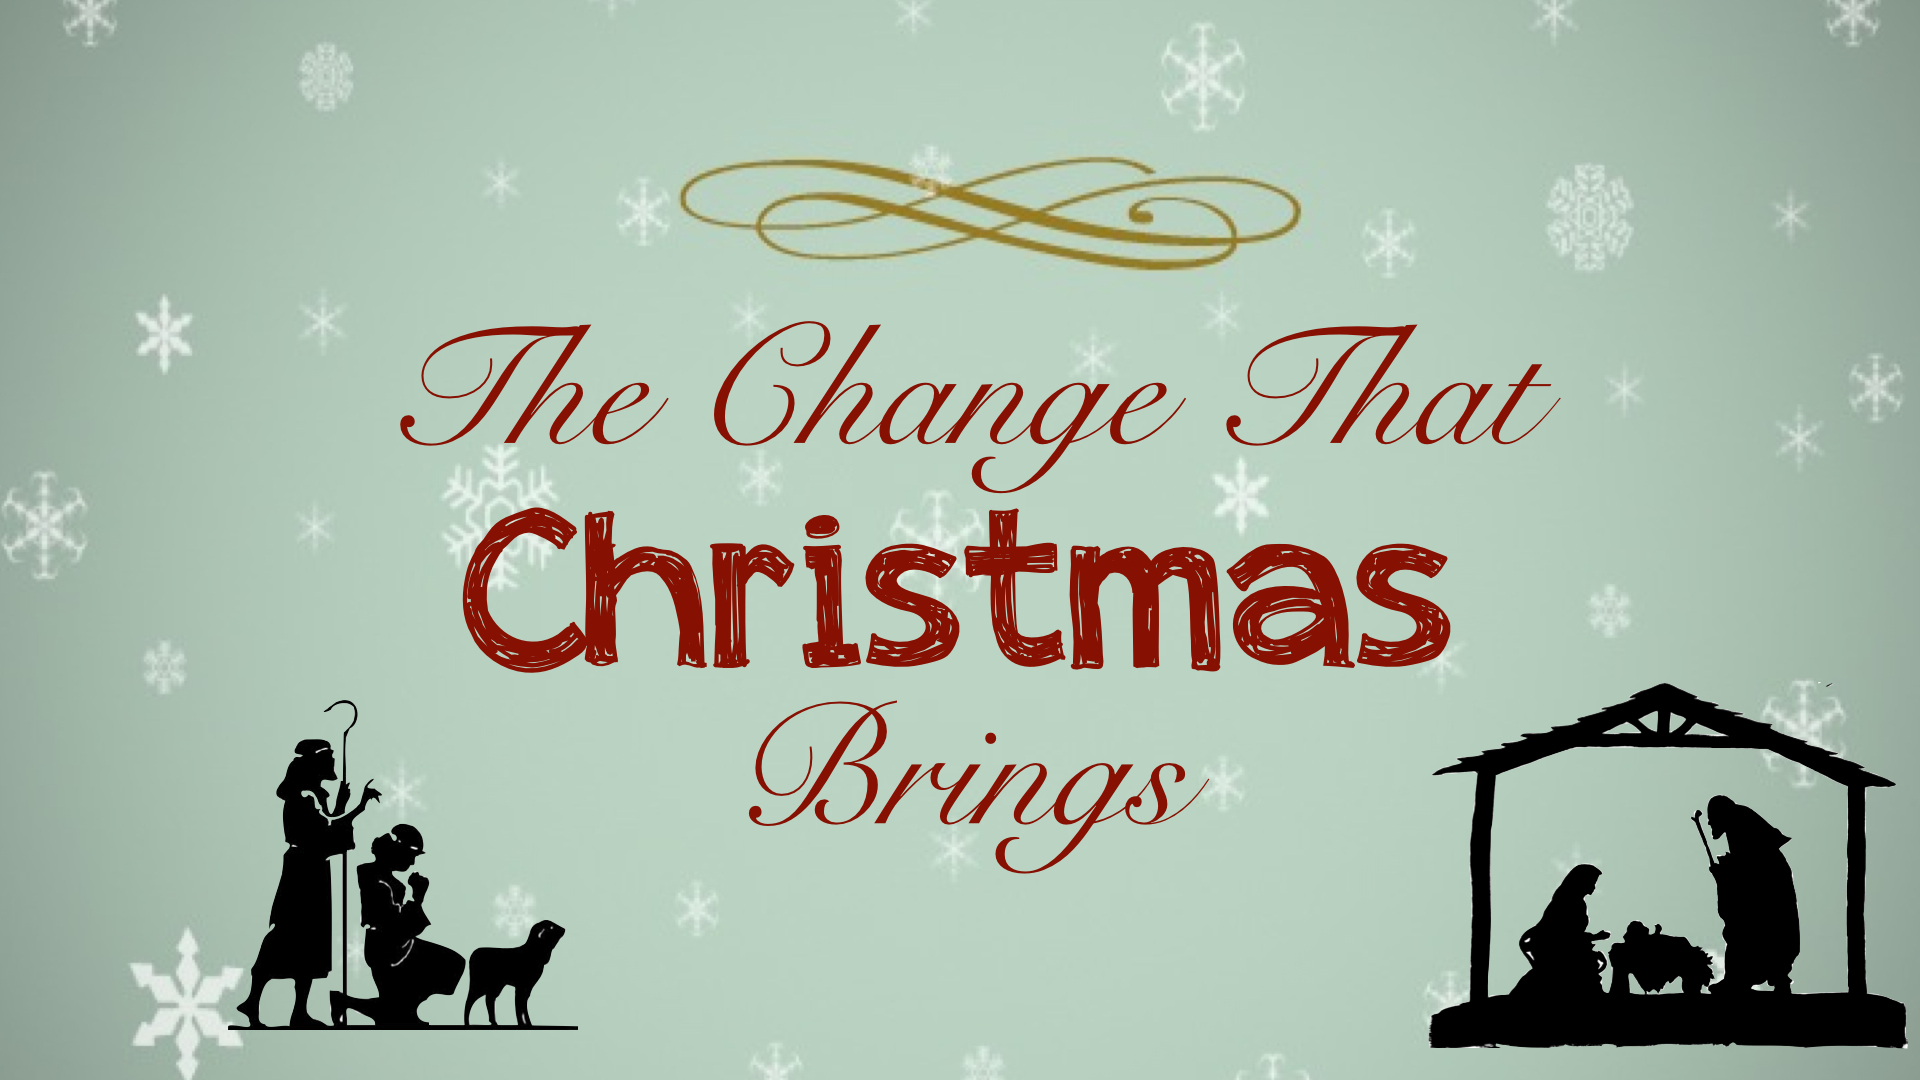 Great Expectations Christmas Sermon Series Idea  merrychristmas mx tl